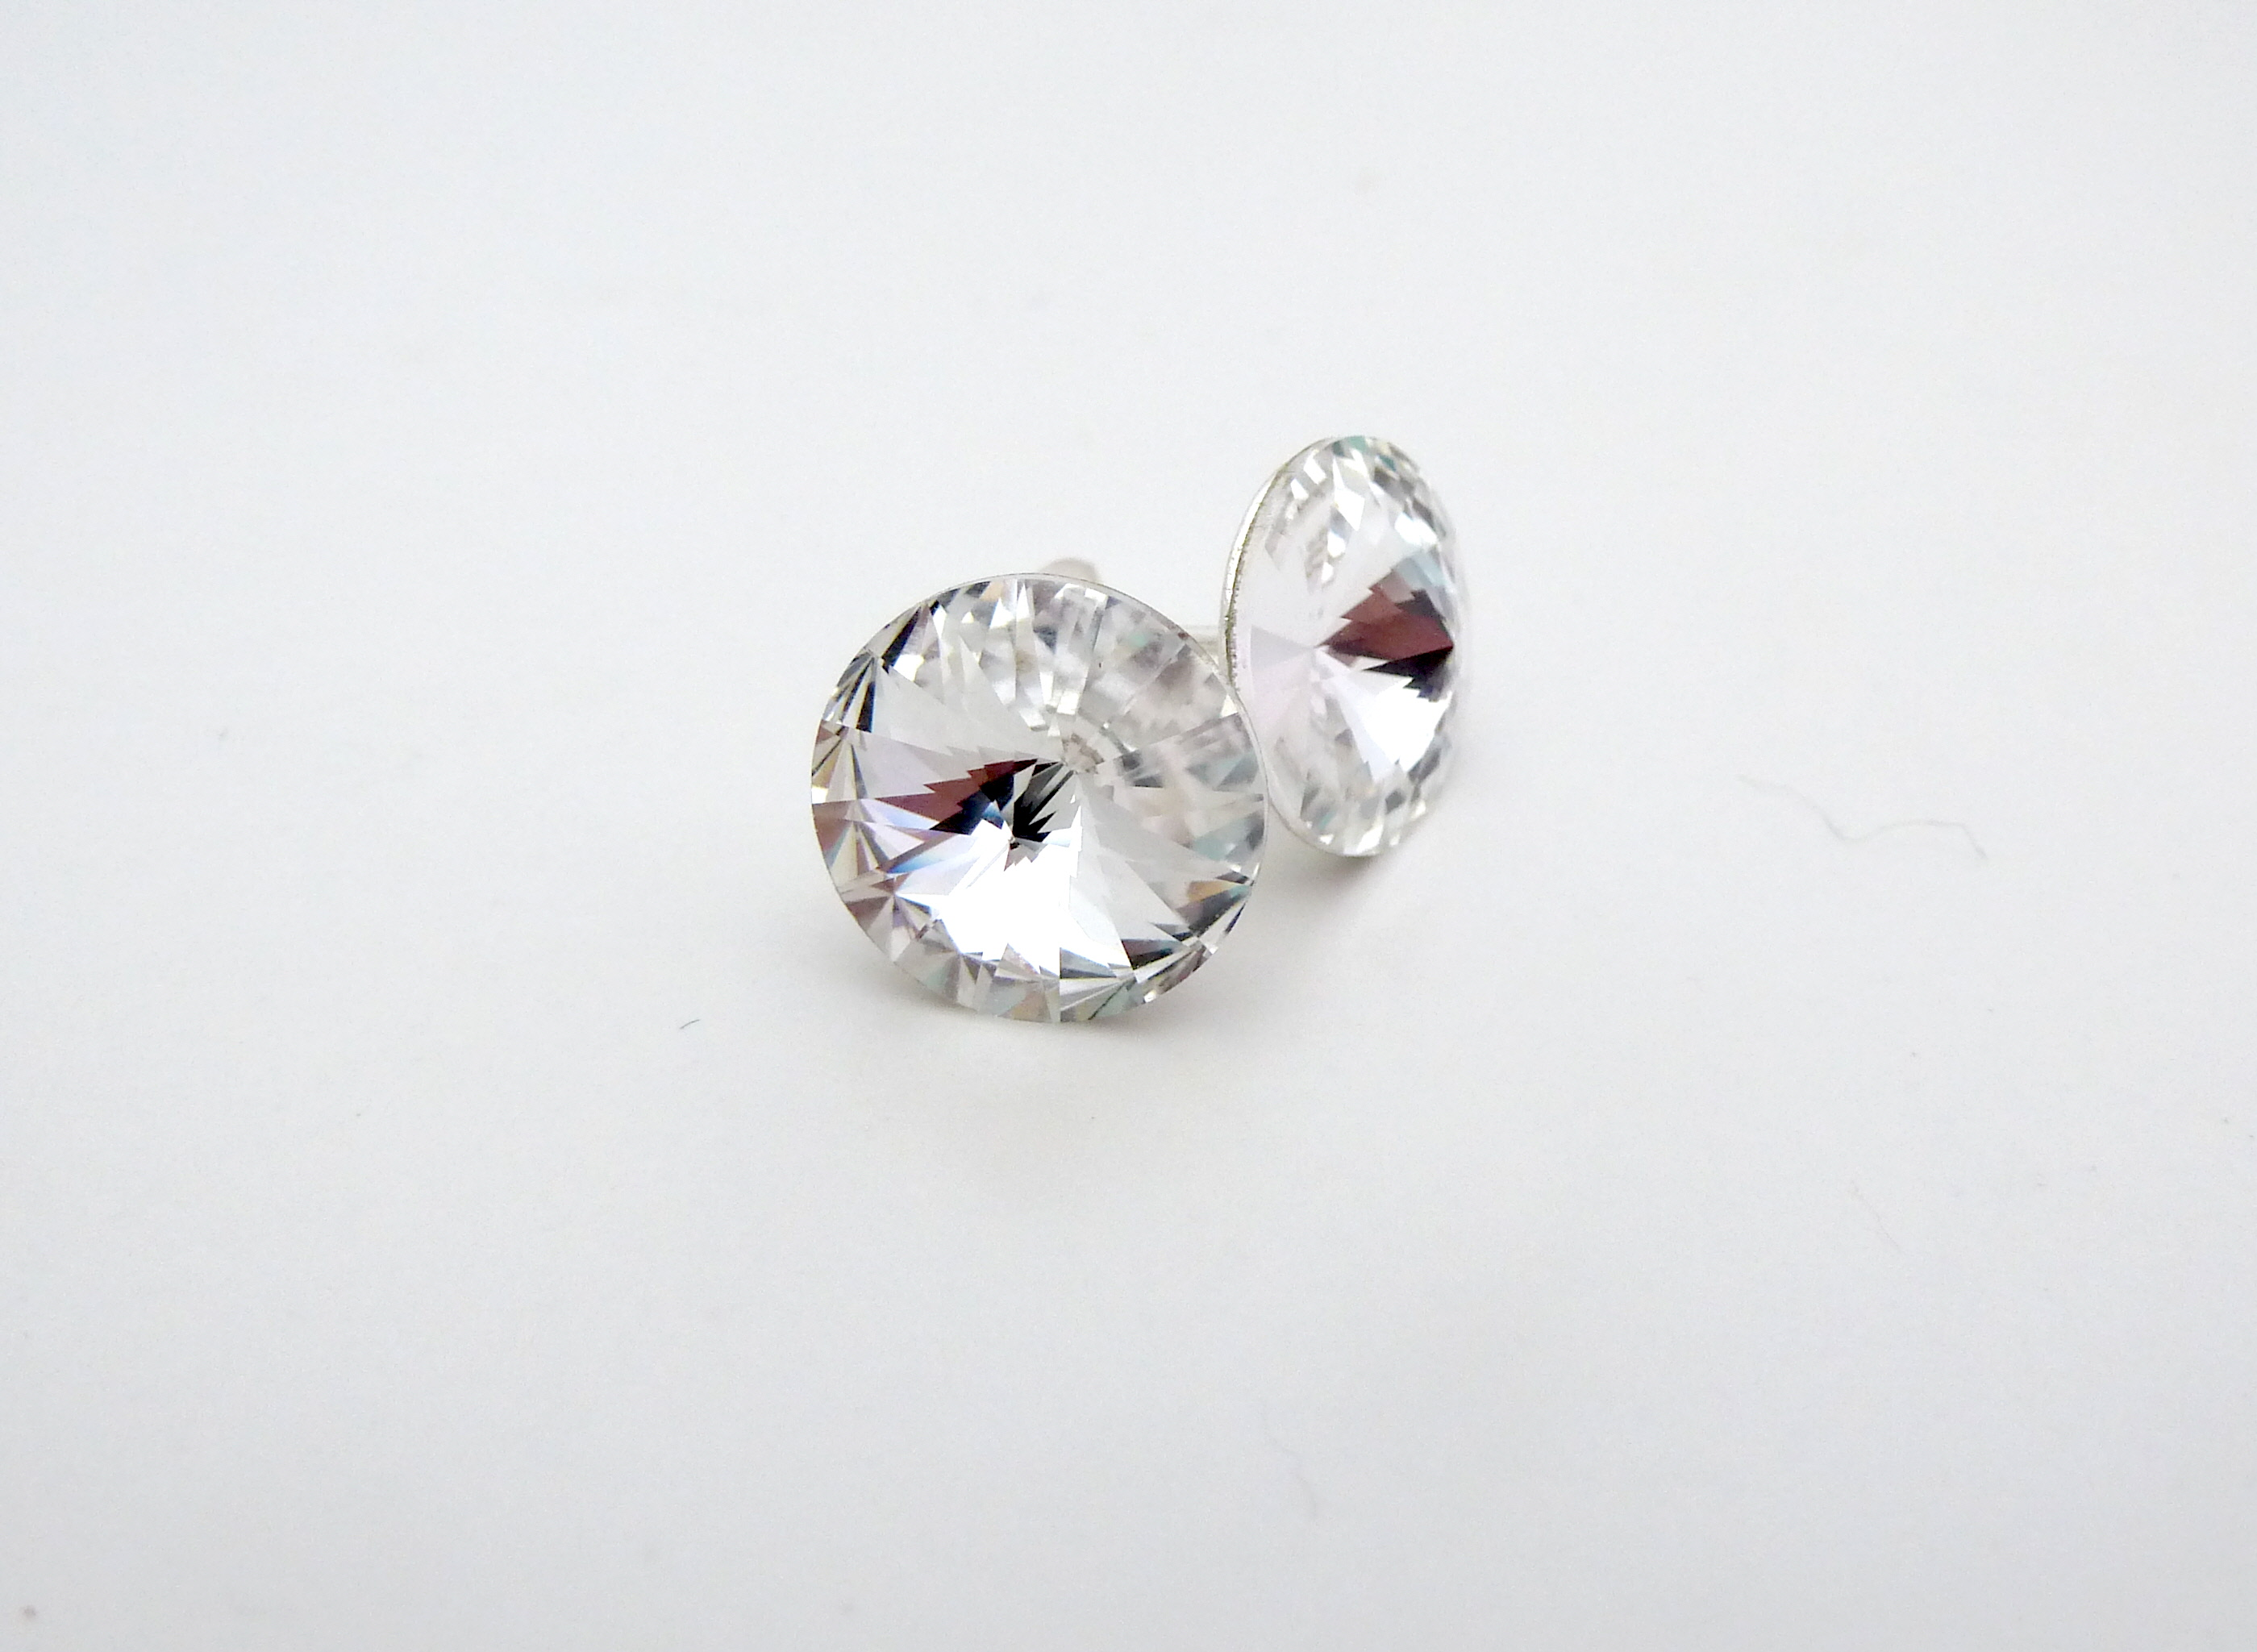 e sparkling sold stud diamond item pierced ruby lane champagne gold natural earrings